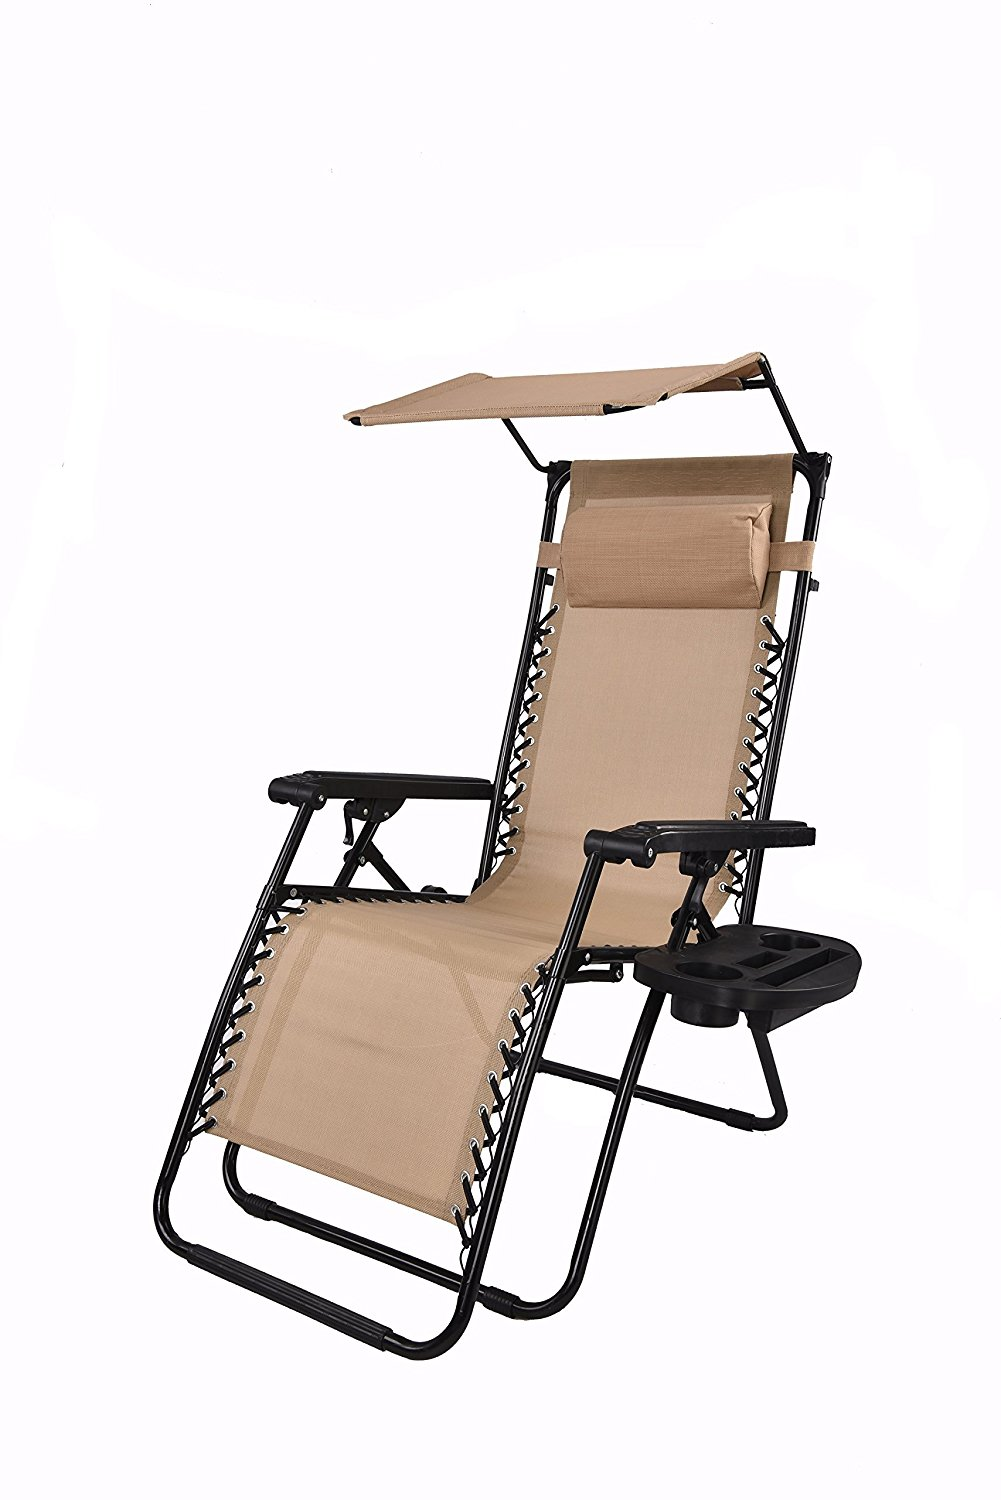 Zero gravity Chair with Canopy Sunshade Tray Cup Holder Tan Beige